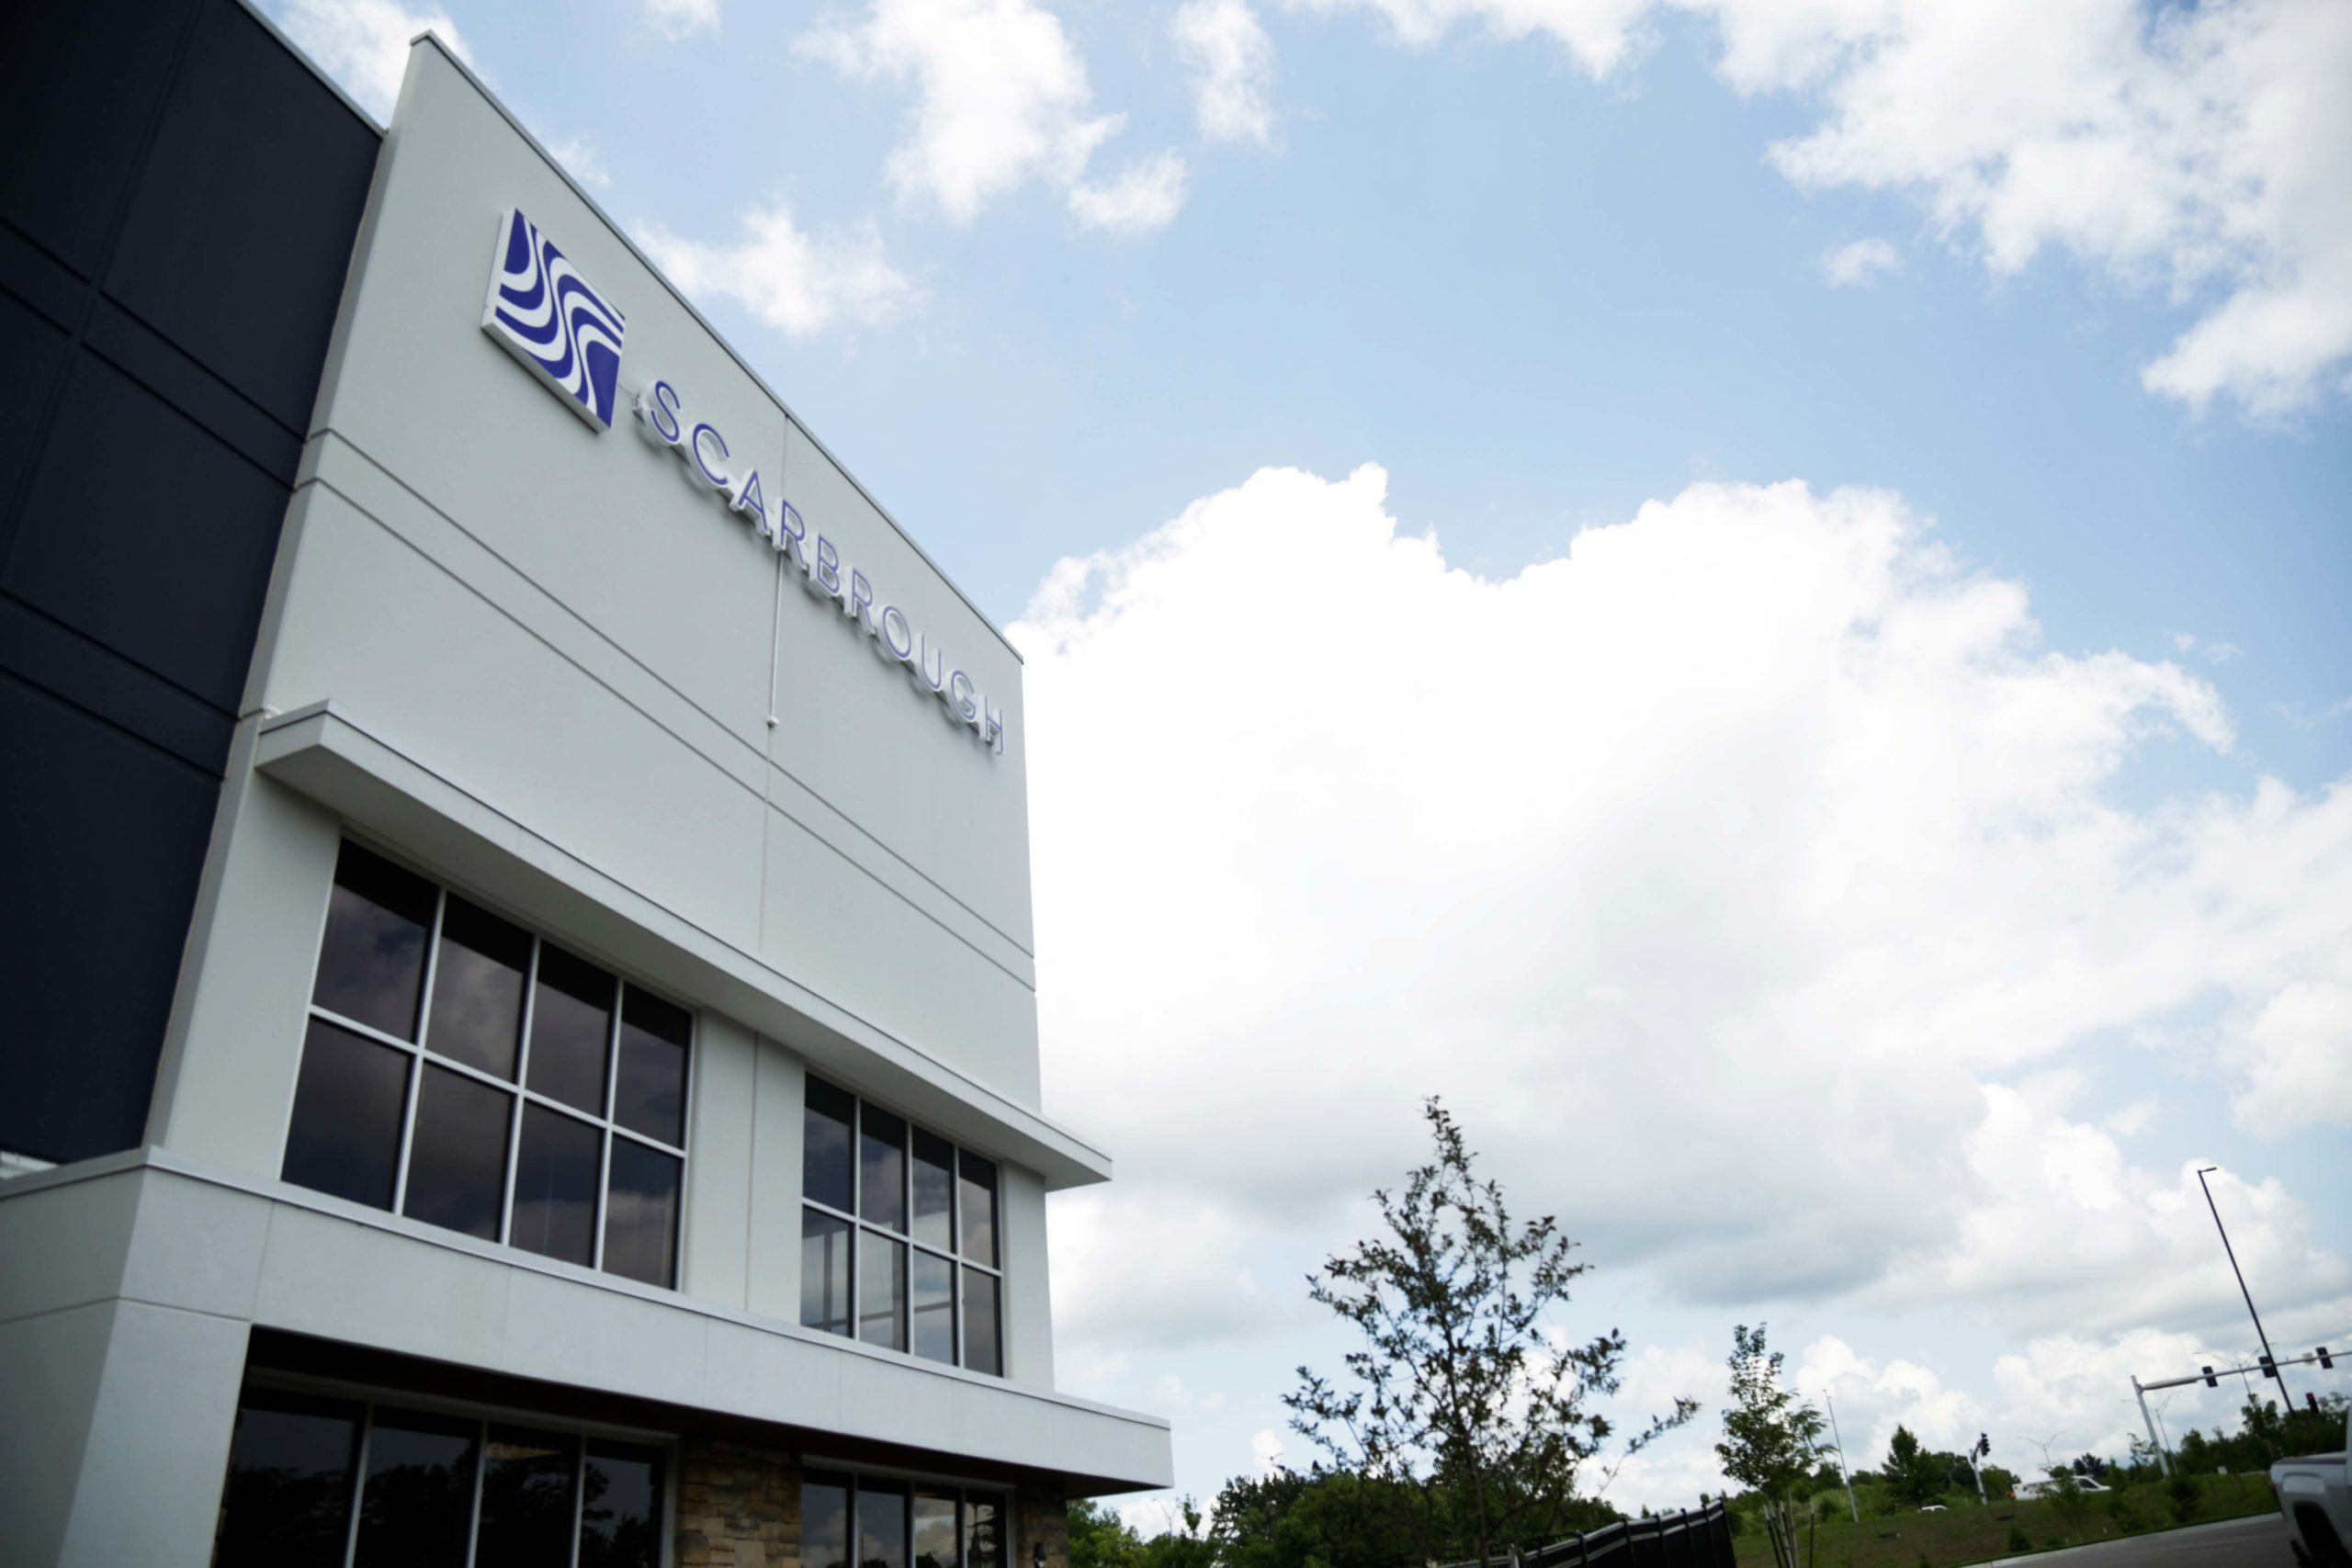 Scarbrough Warehousing starts operations at new facility